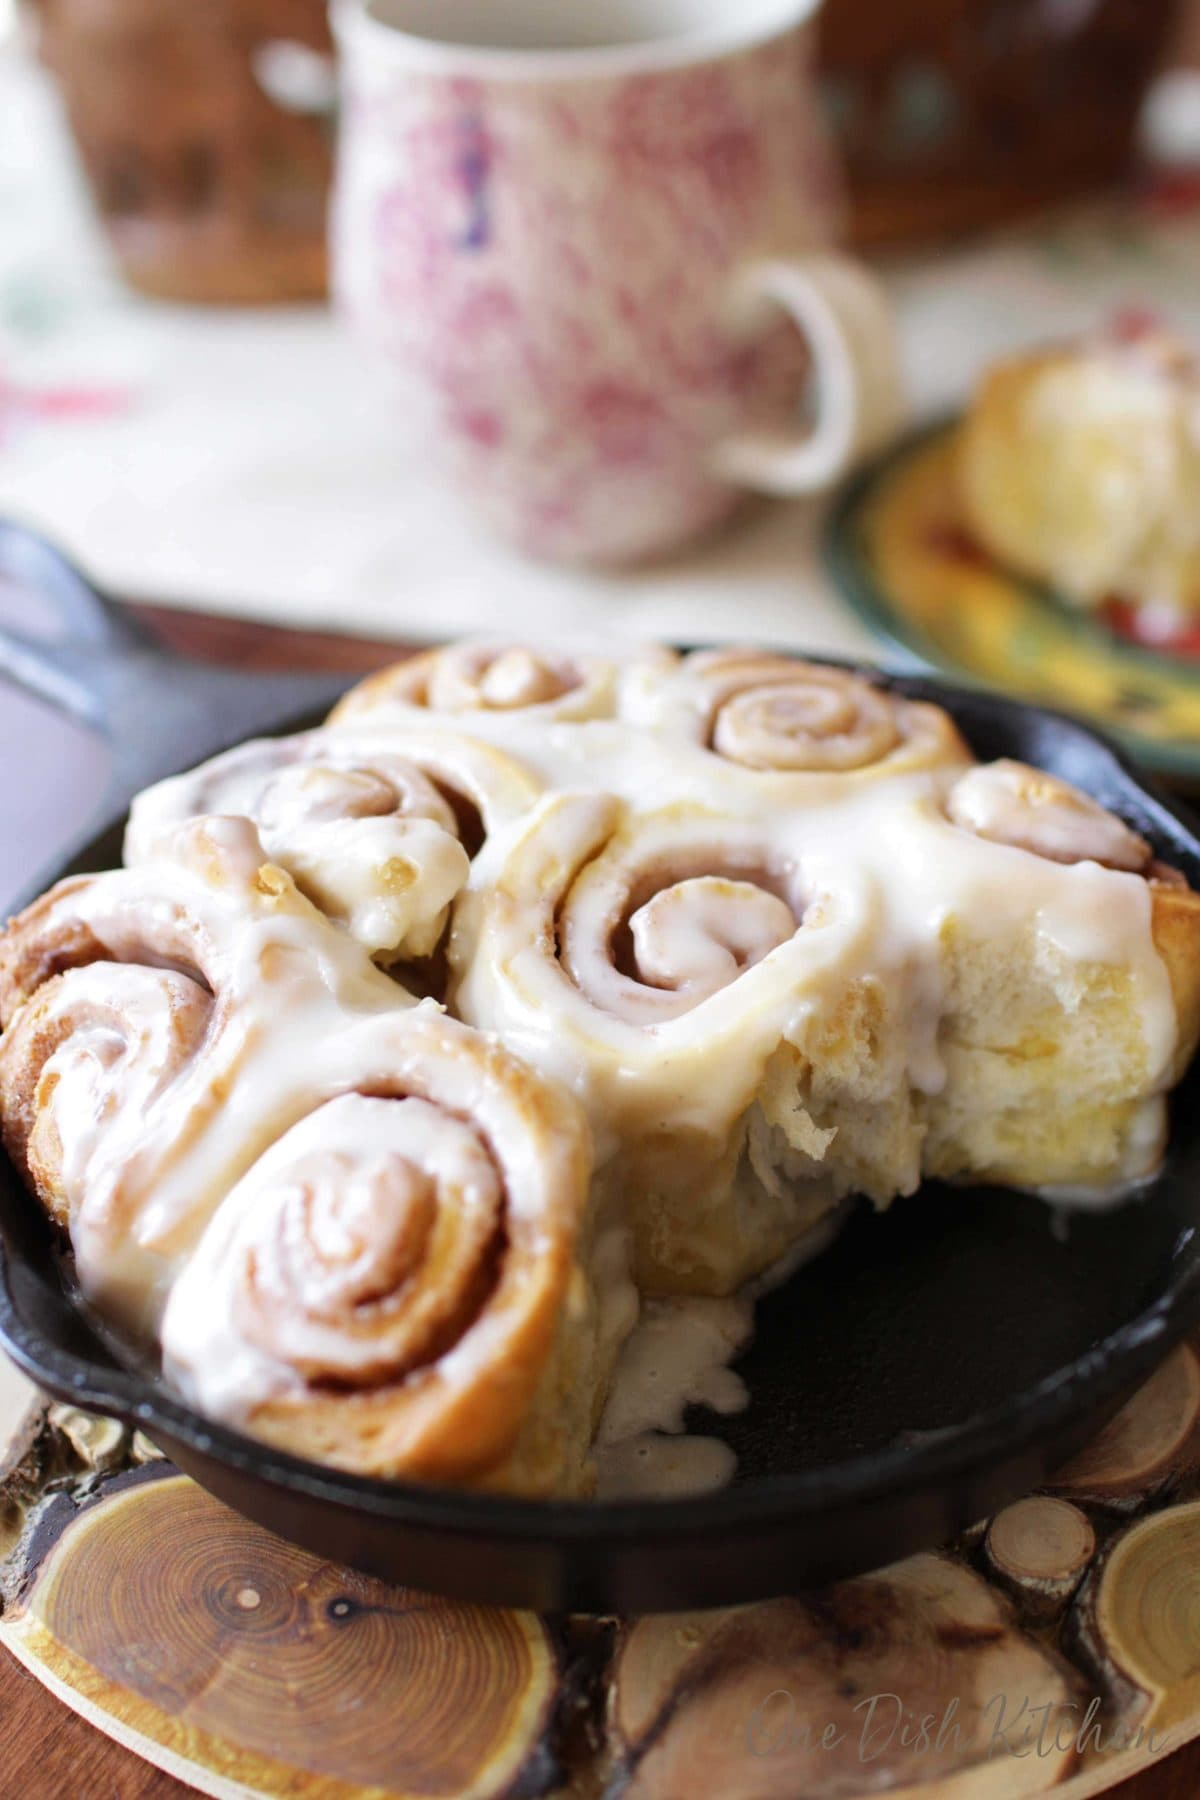 A closeup of cinnamon rolls on a small skillet with a few missing on a wooden trivet next to a cup of coffee.